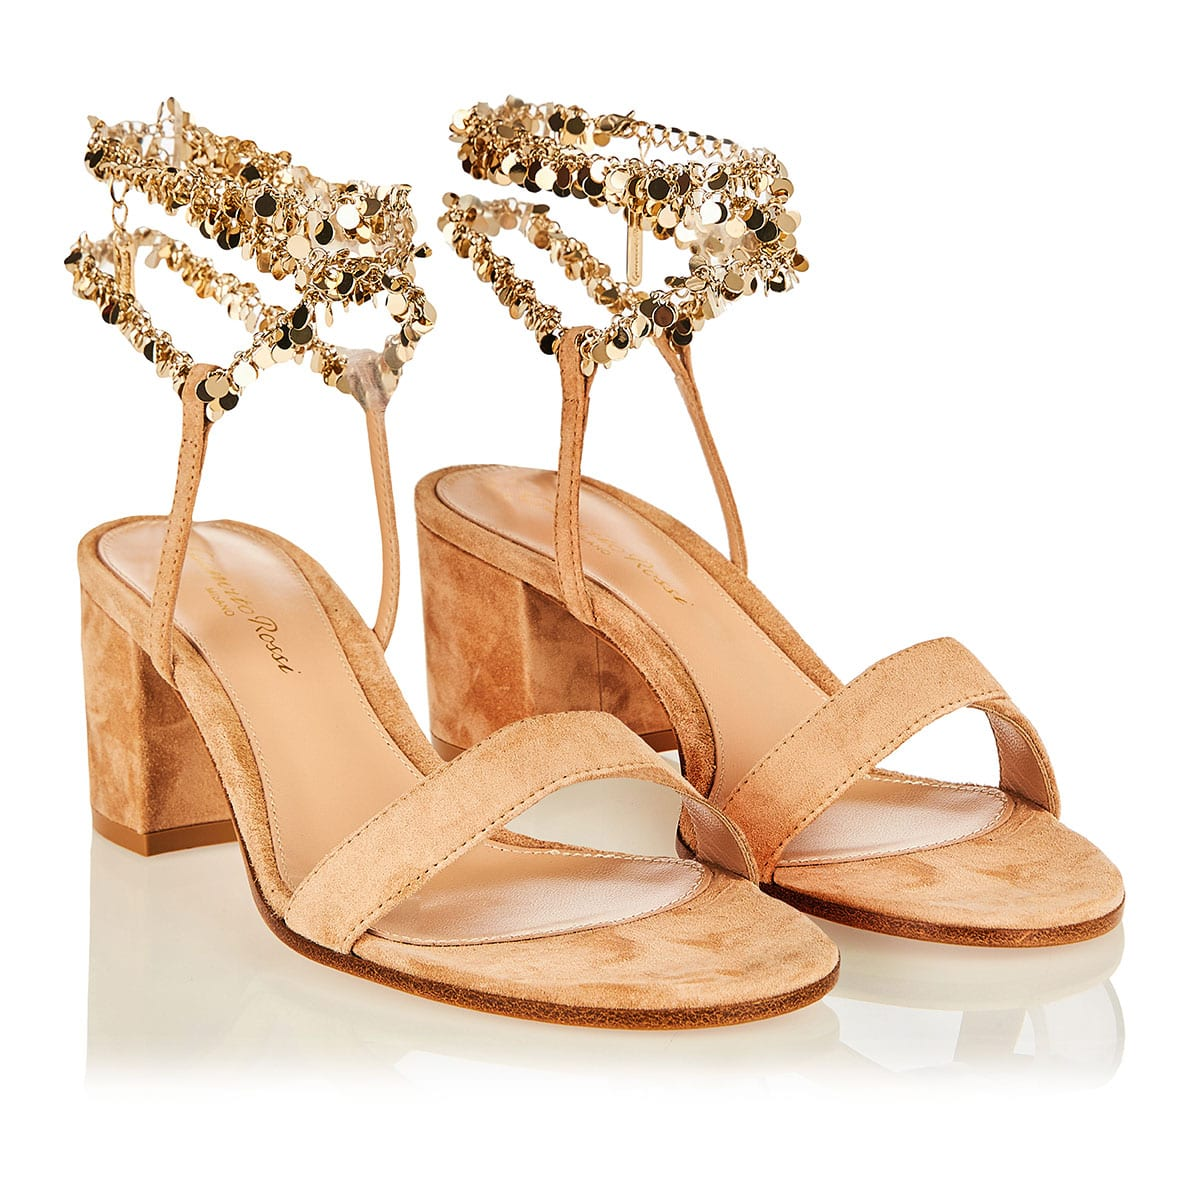 Tebe 60 chain-embellished suede sandals